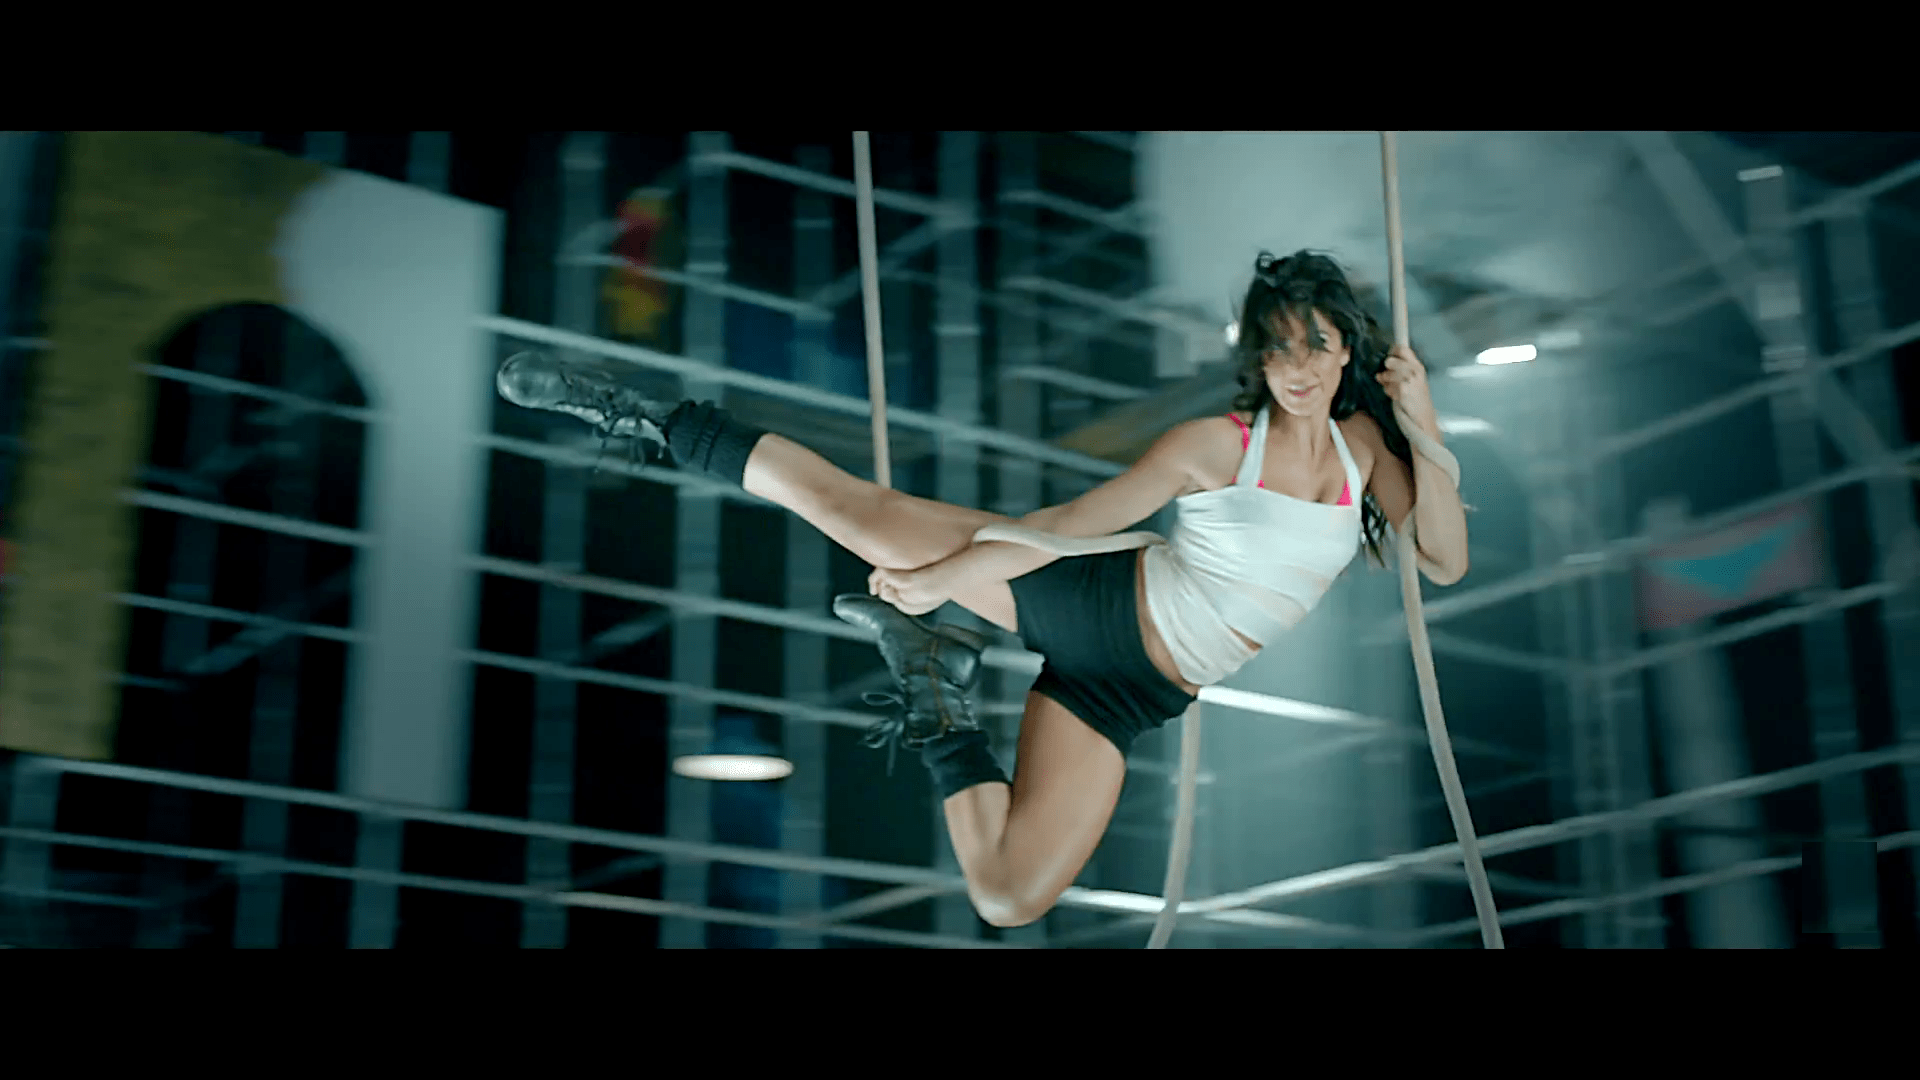 Cars The Movie Wallpapers Free Katrina Kaif In Dhoom 3 Hd Wallpapers And Pictures Hd